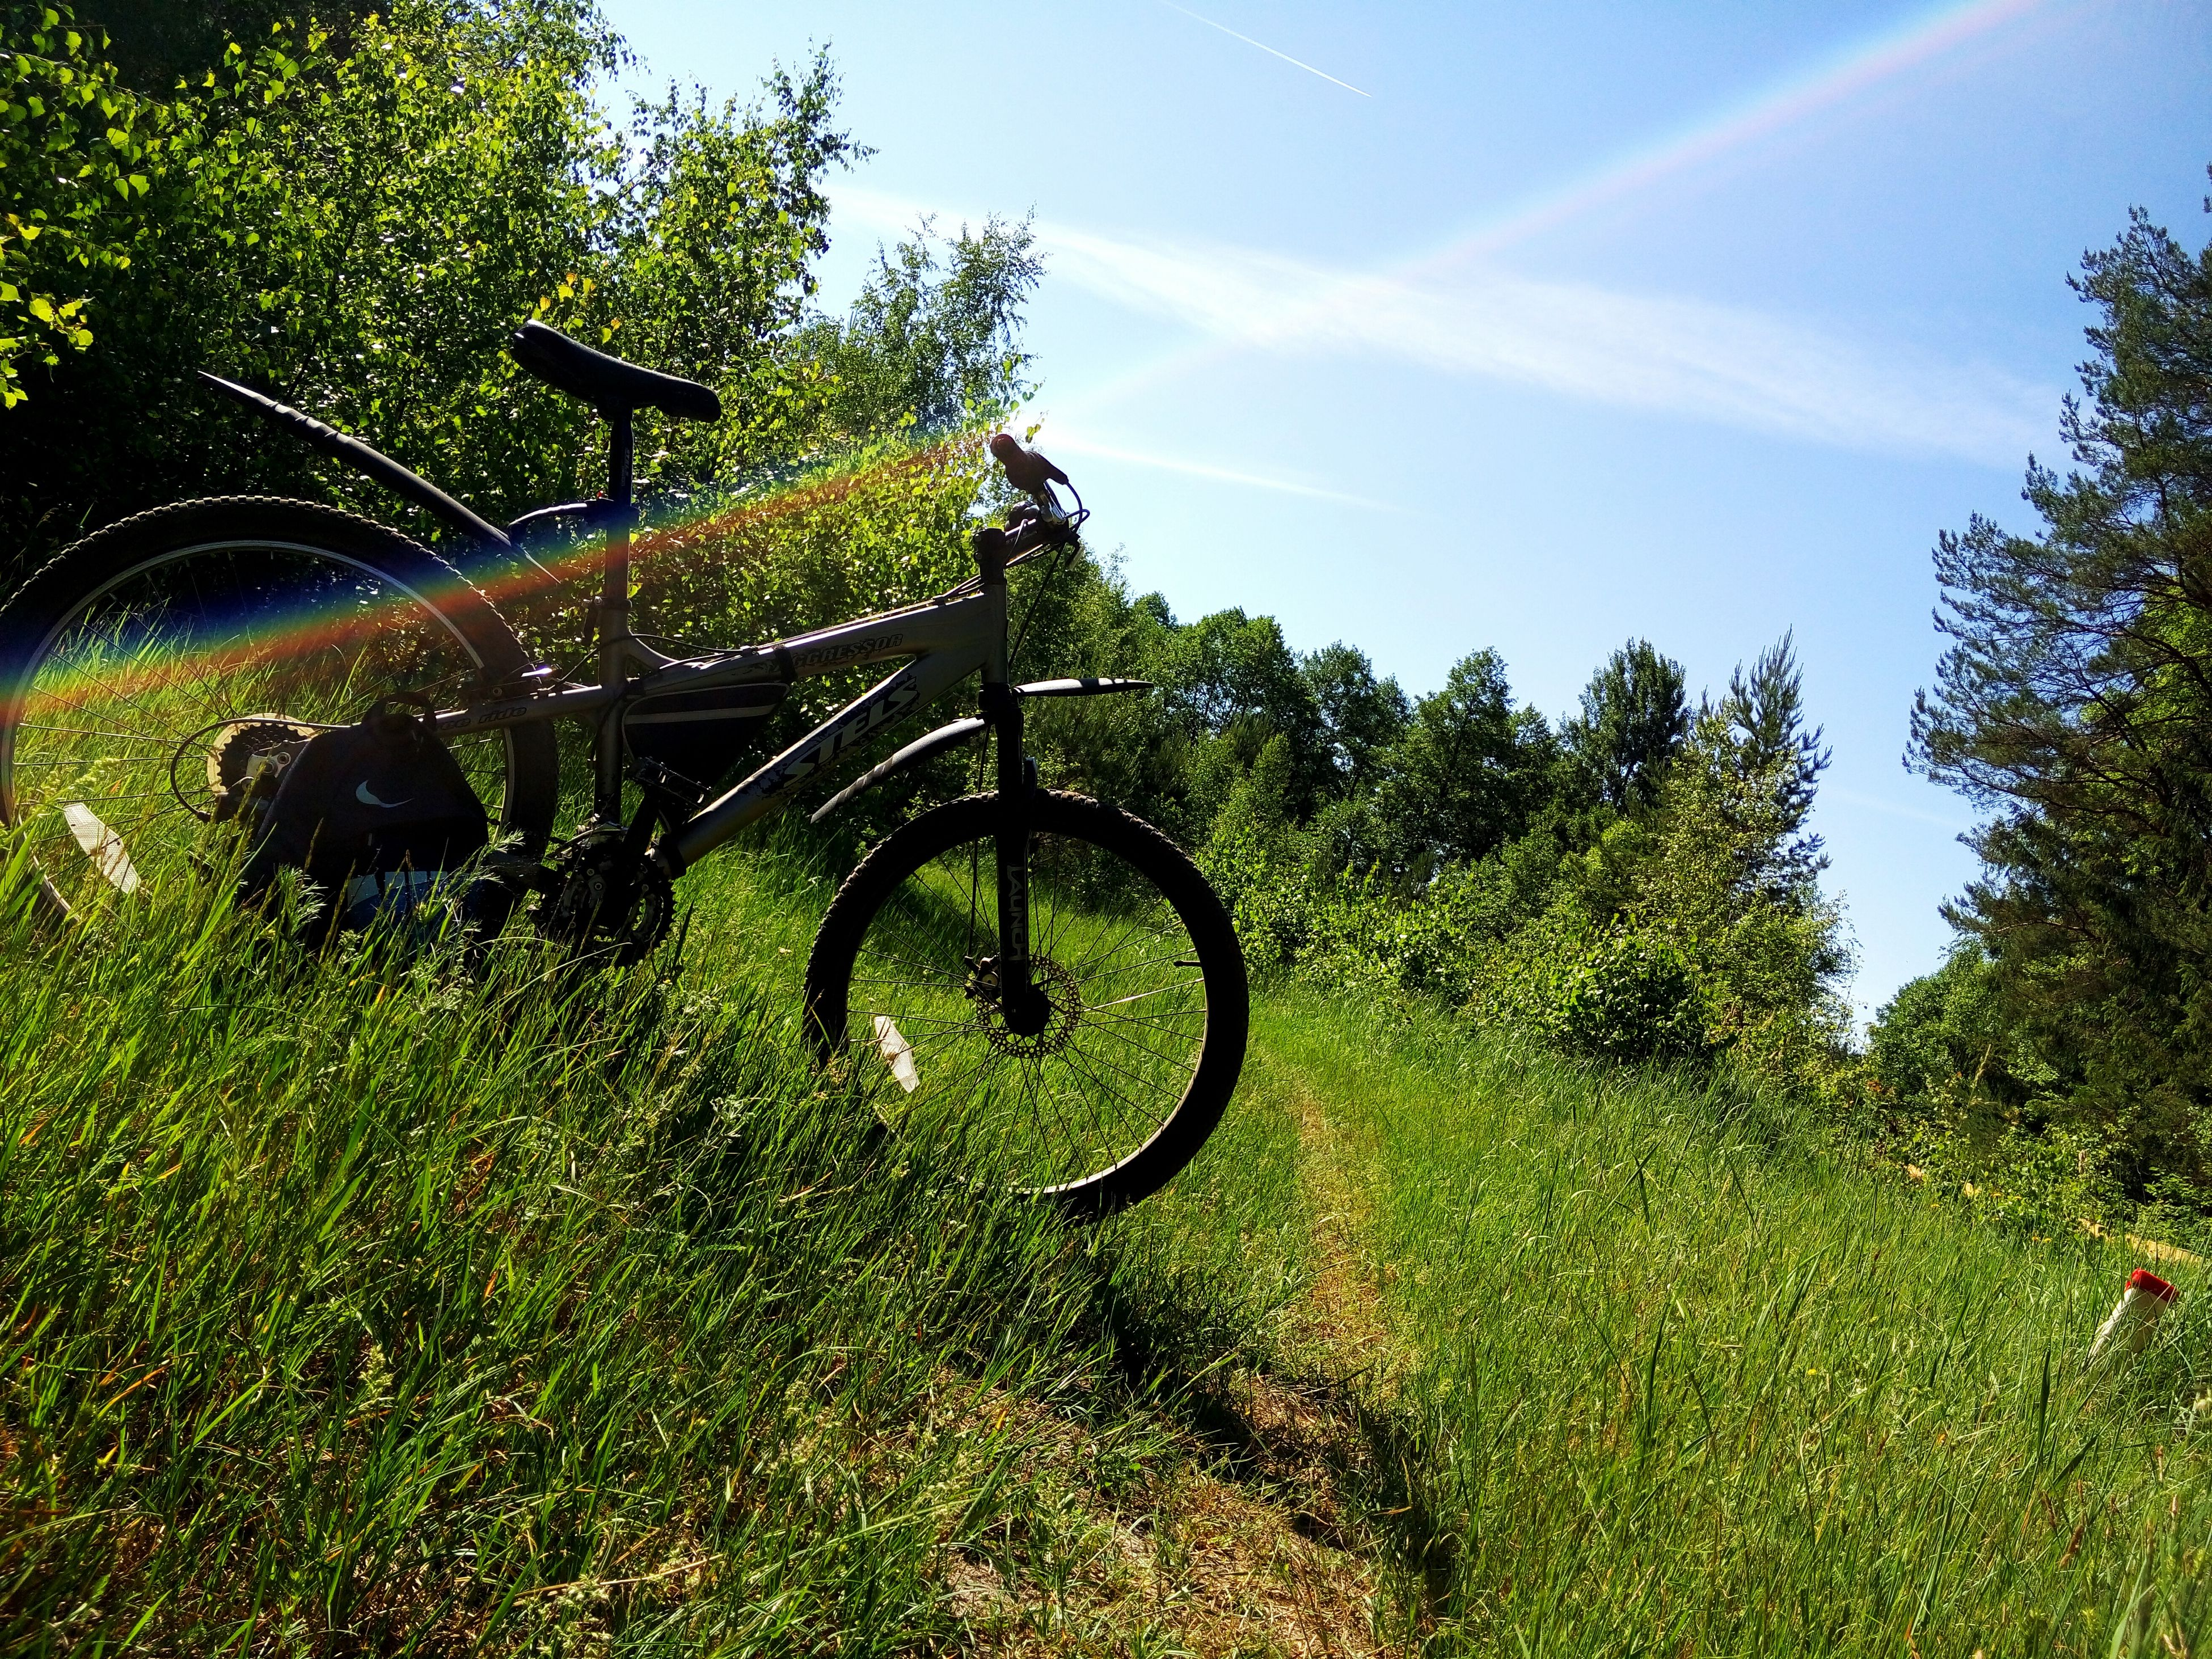 tree, grass, growth, field, green color, plant, sky, grassy, sunlight, nature, tranquility, day, bicycle, outdoors, tranquil scene, no people, landscape, shadow, beauty in nature, rural scene